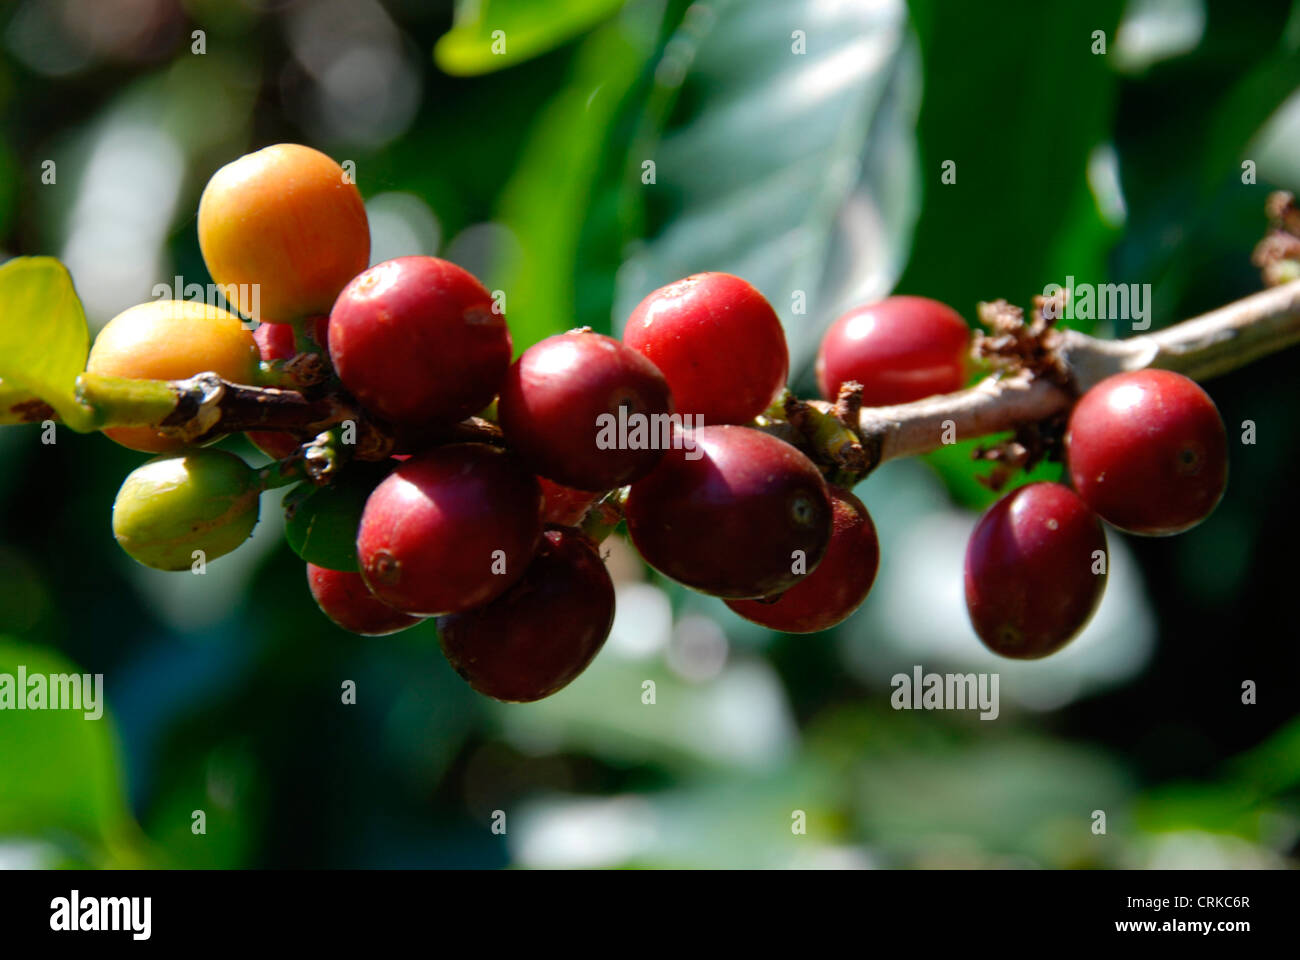 Costa Coffee Arabica Robusta Poas Costa Rica Coffee Stock Photos And Poas Costa Rica